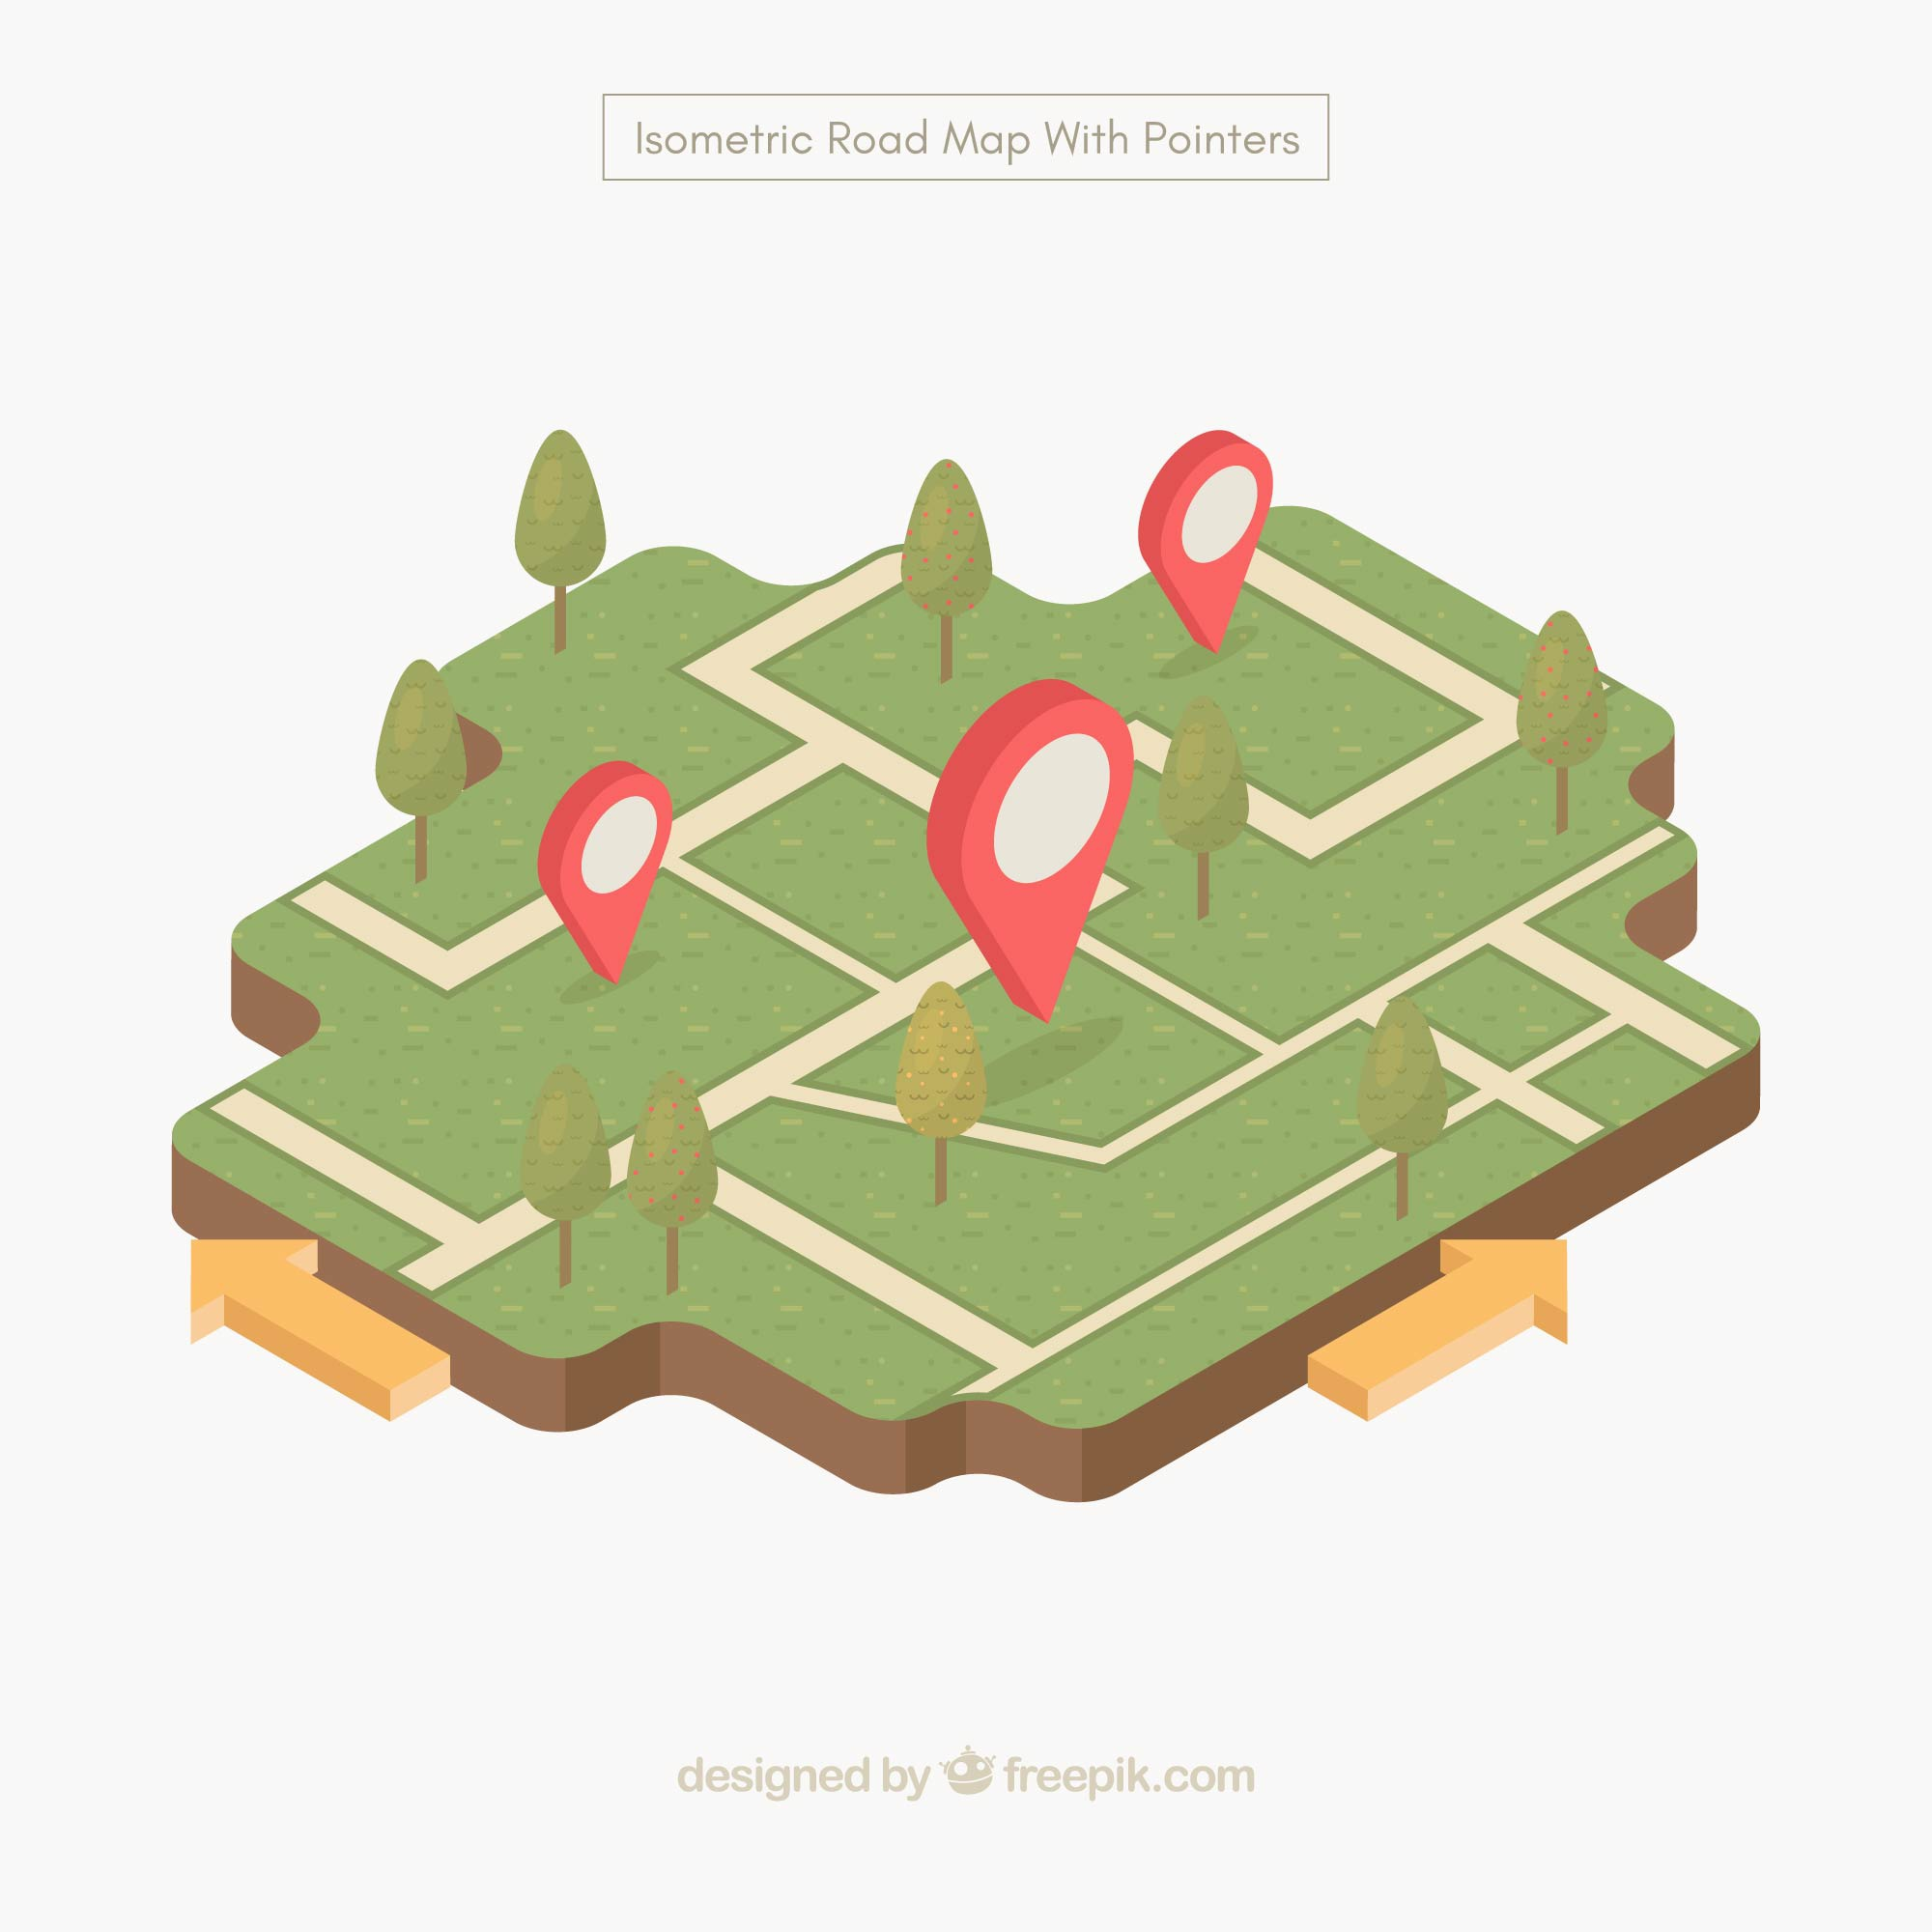 Road map with pointers in isometric style